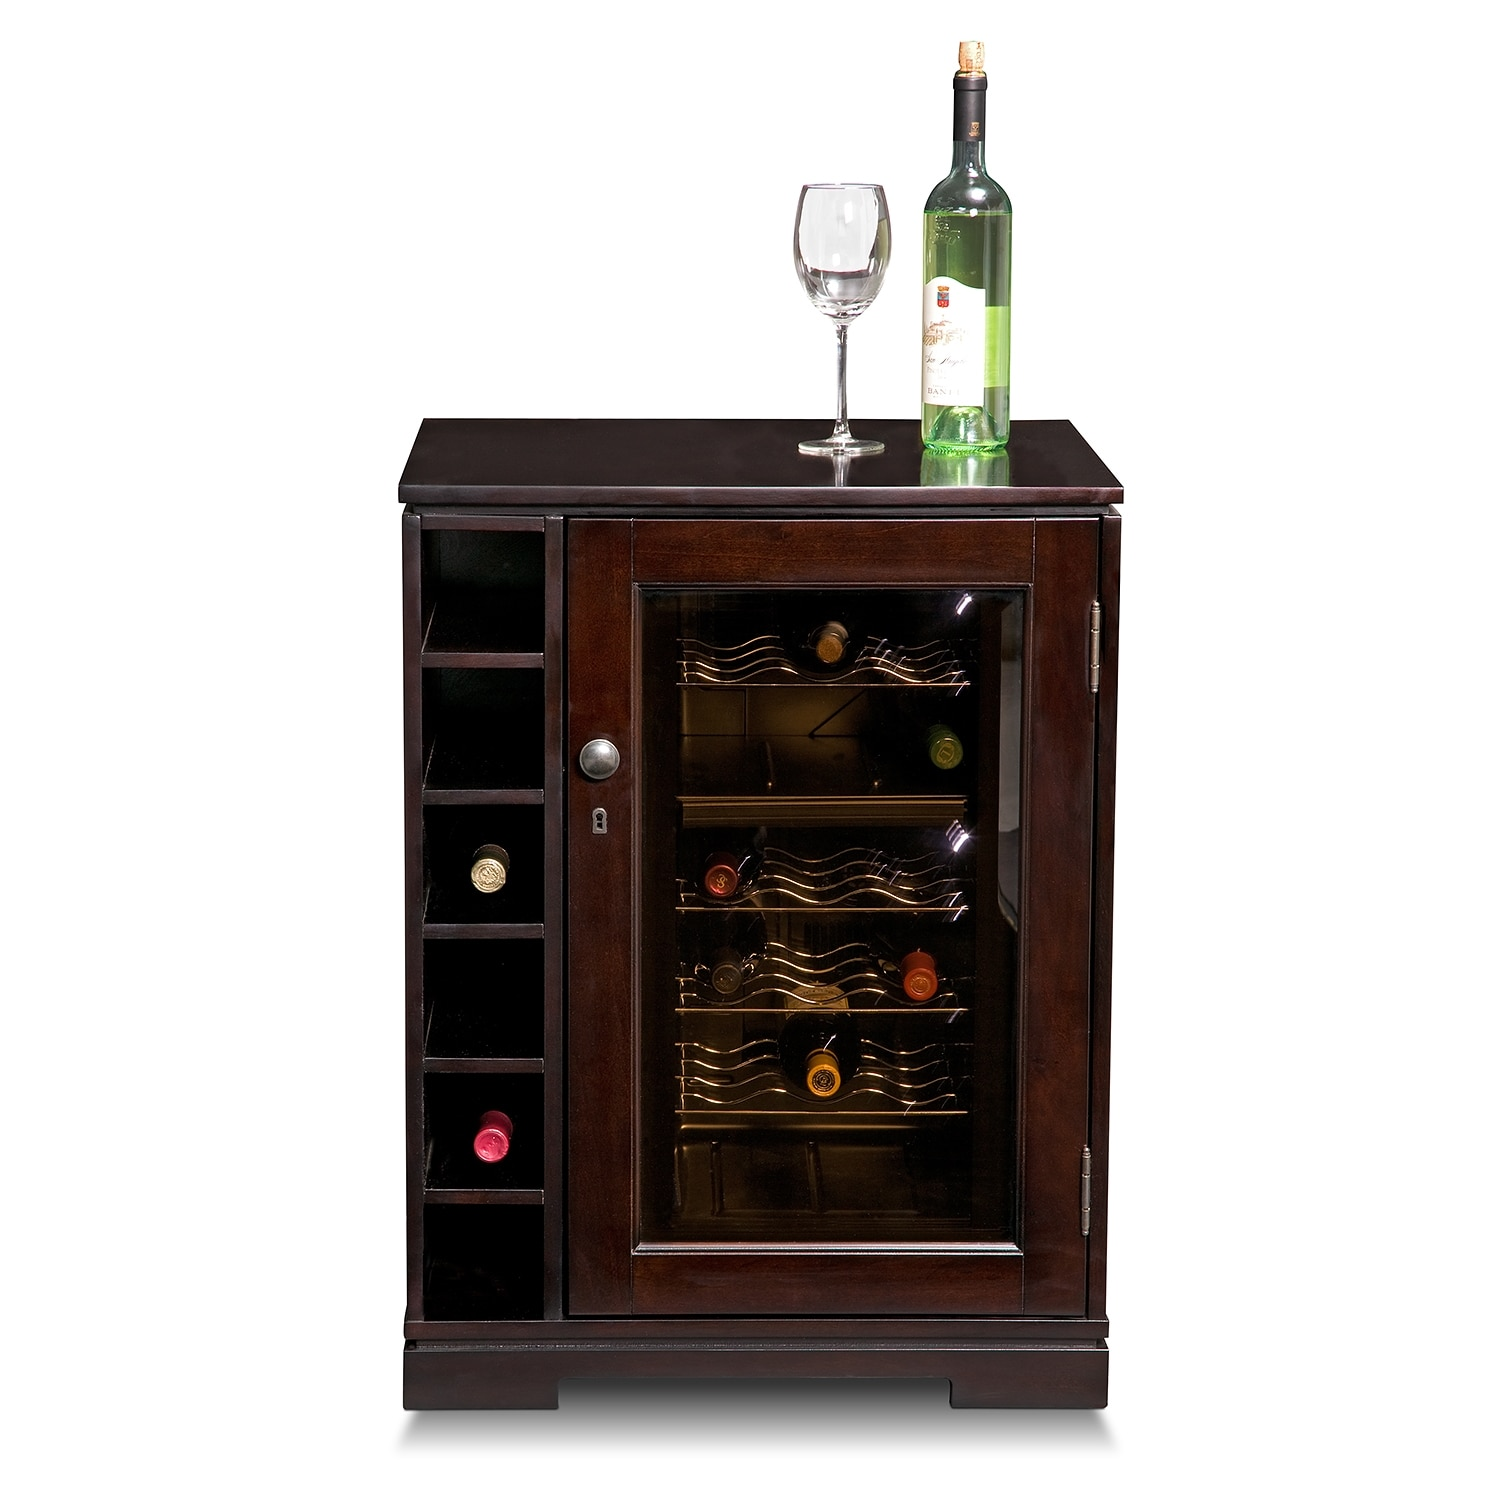 Wine Refrigerators Wine Coolers And Wine Cabinets At Html